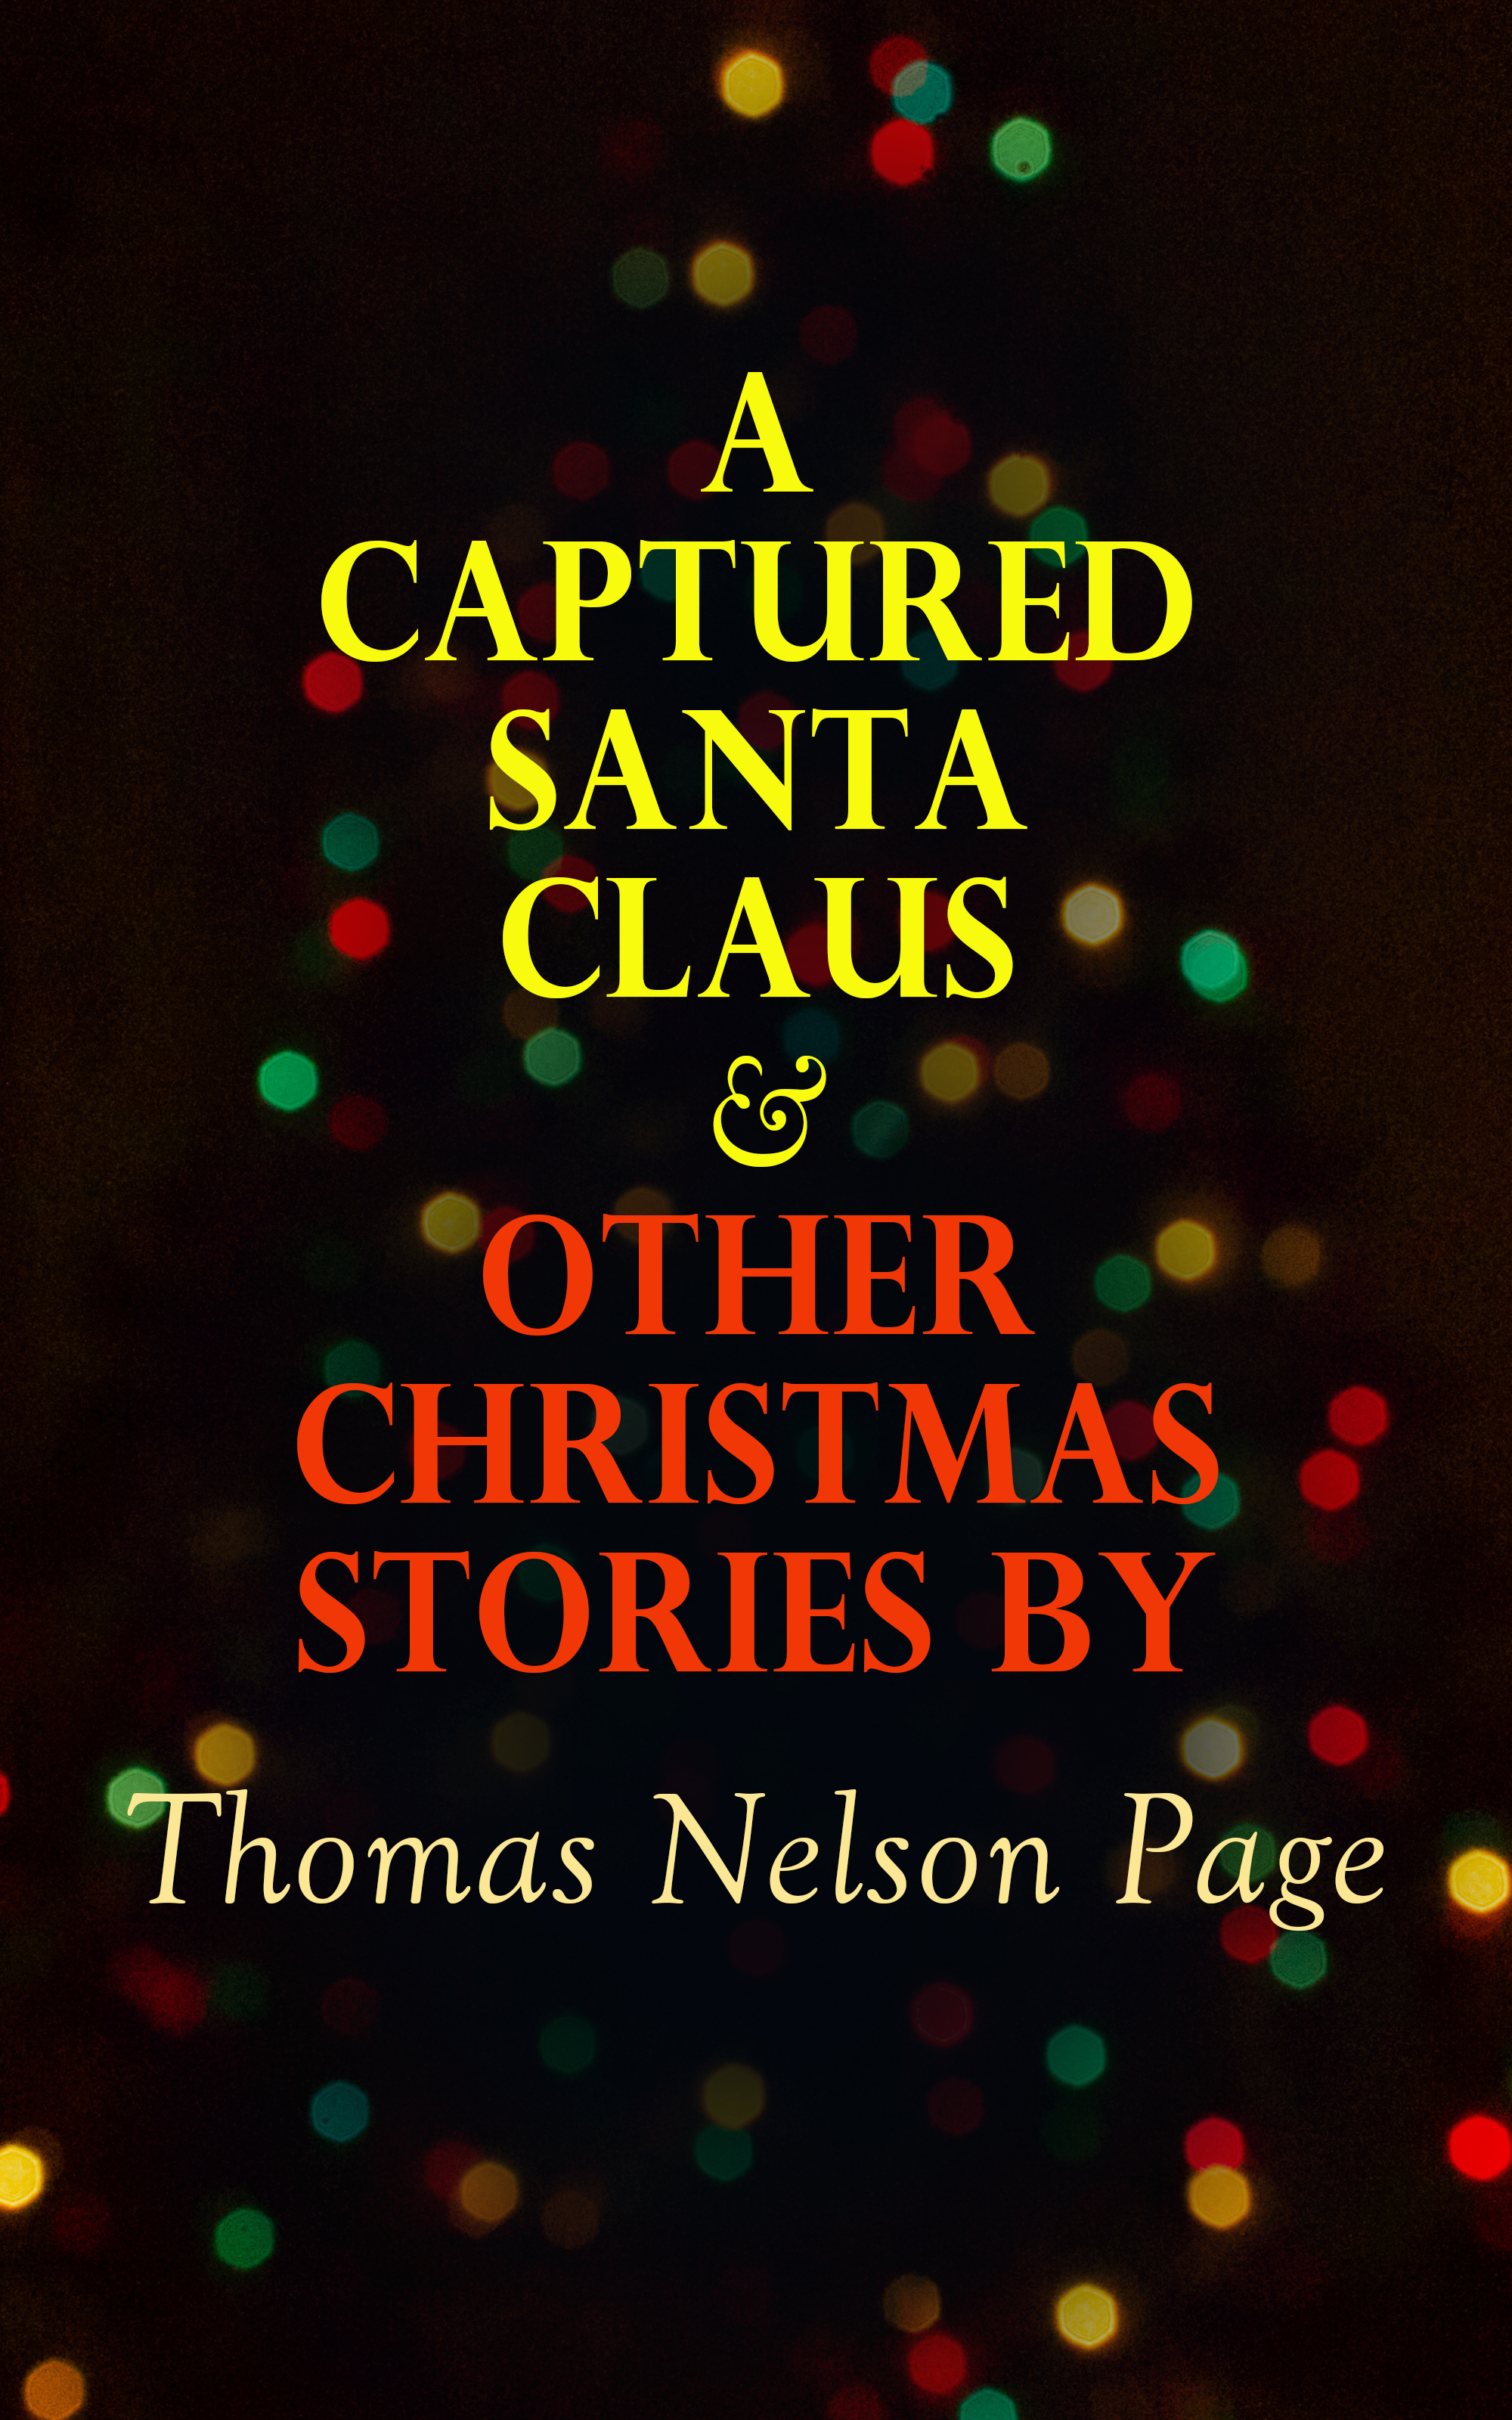 Thomas Nelson Page A Captured Santa Claus & Other Christmas Stories by Thomas Nelson Page sitemap html page 10 page 9 page 7 page 7 page 5 page 8 page 6